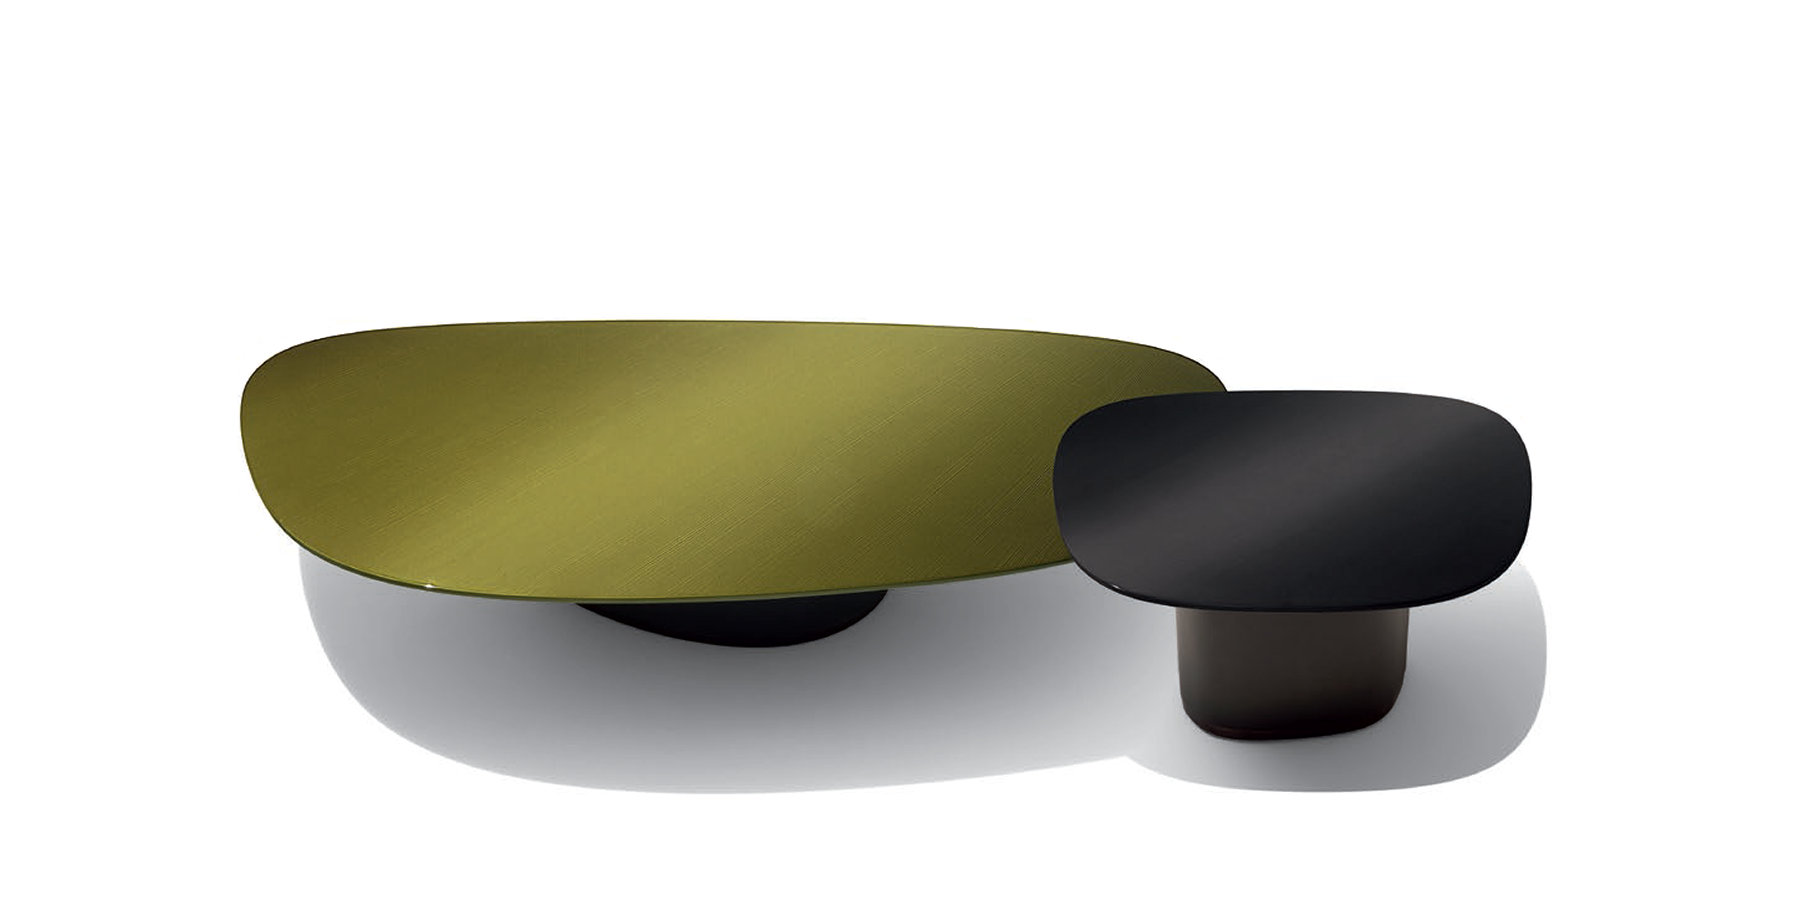 Galet Low Tables By Ludovica Roberto Palomba For Giorgetti Stone Graduated Color Lacquer Or Glass Tops On Leather Bases 4 Sizes Glass Top Glass Low Tables [ 900 x 1800 Pixel ]